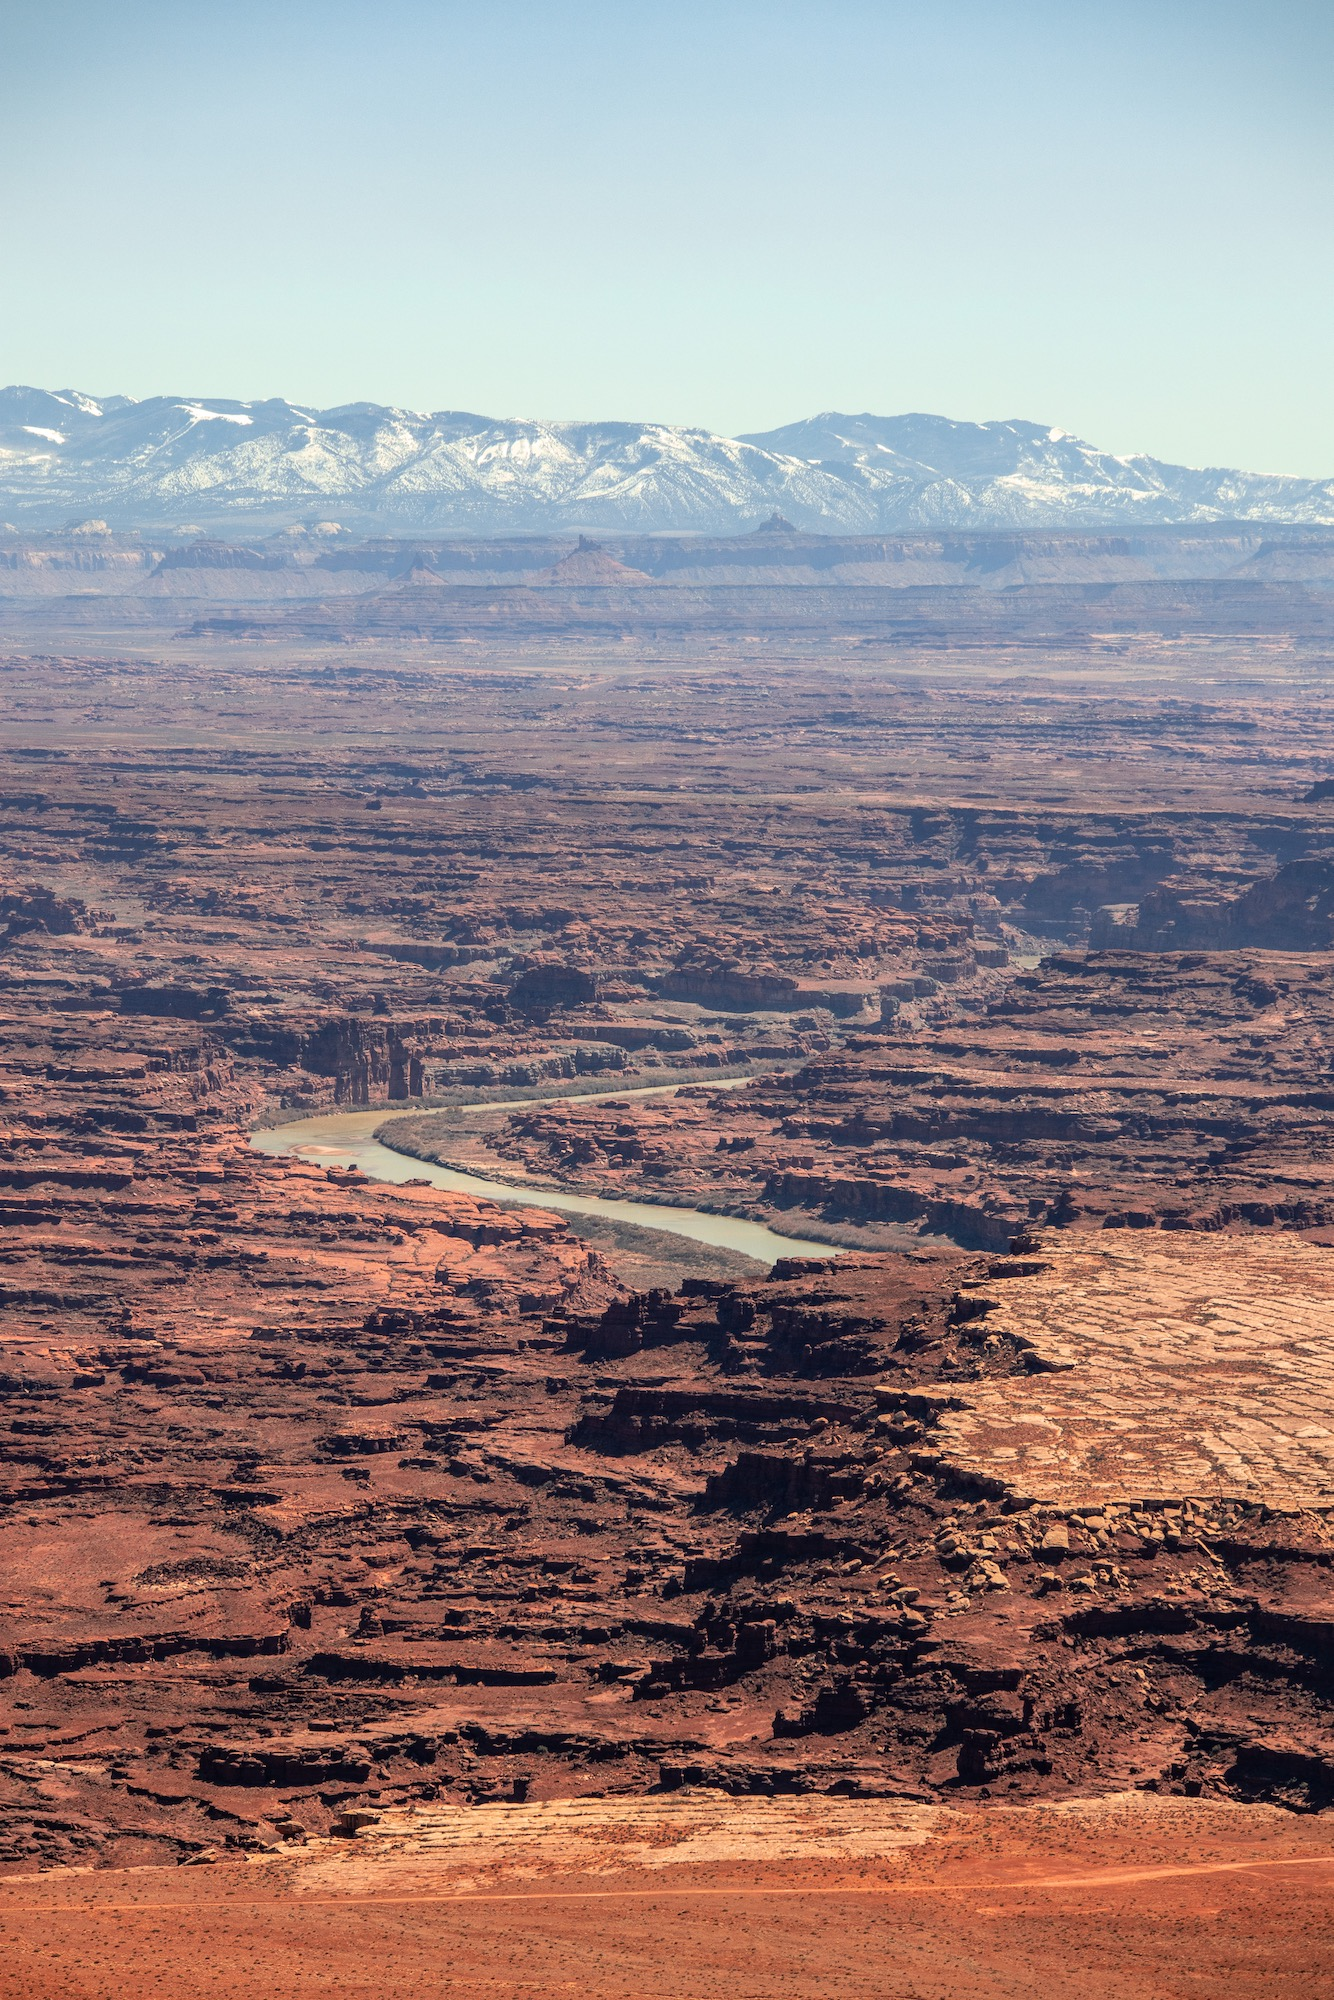 The canyons are never ending. Colorado River at the center.